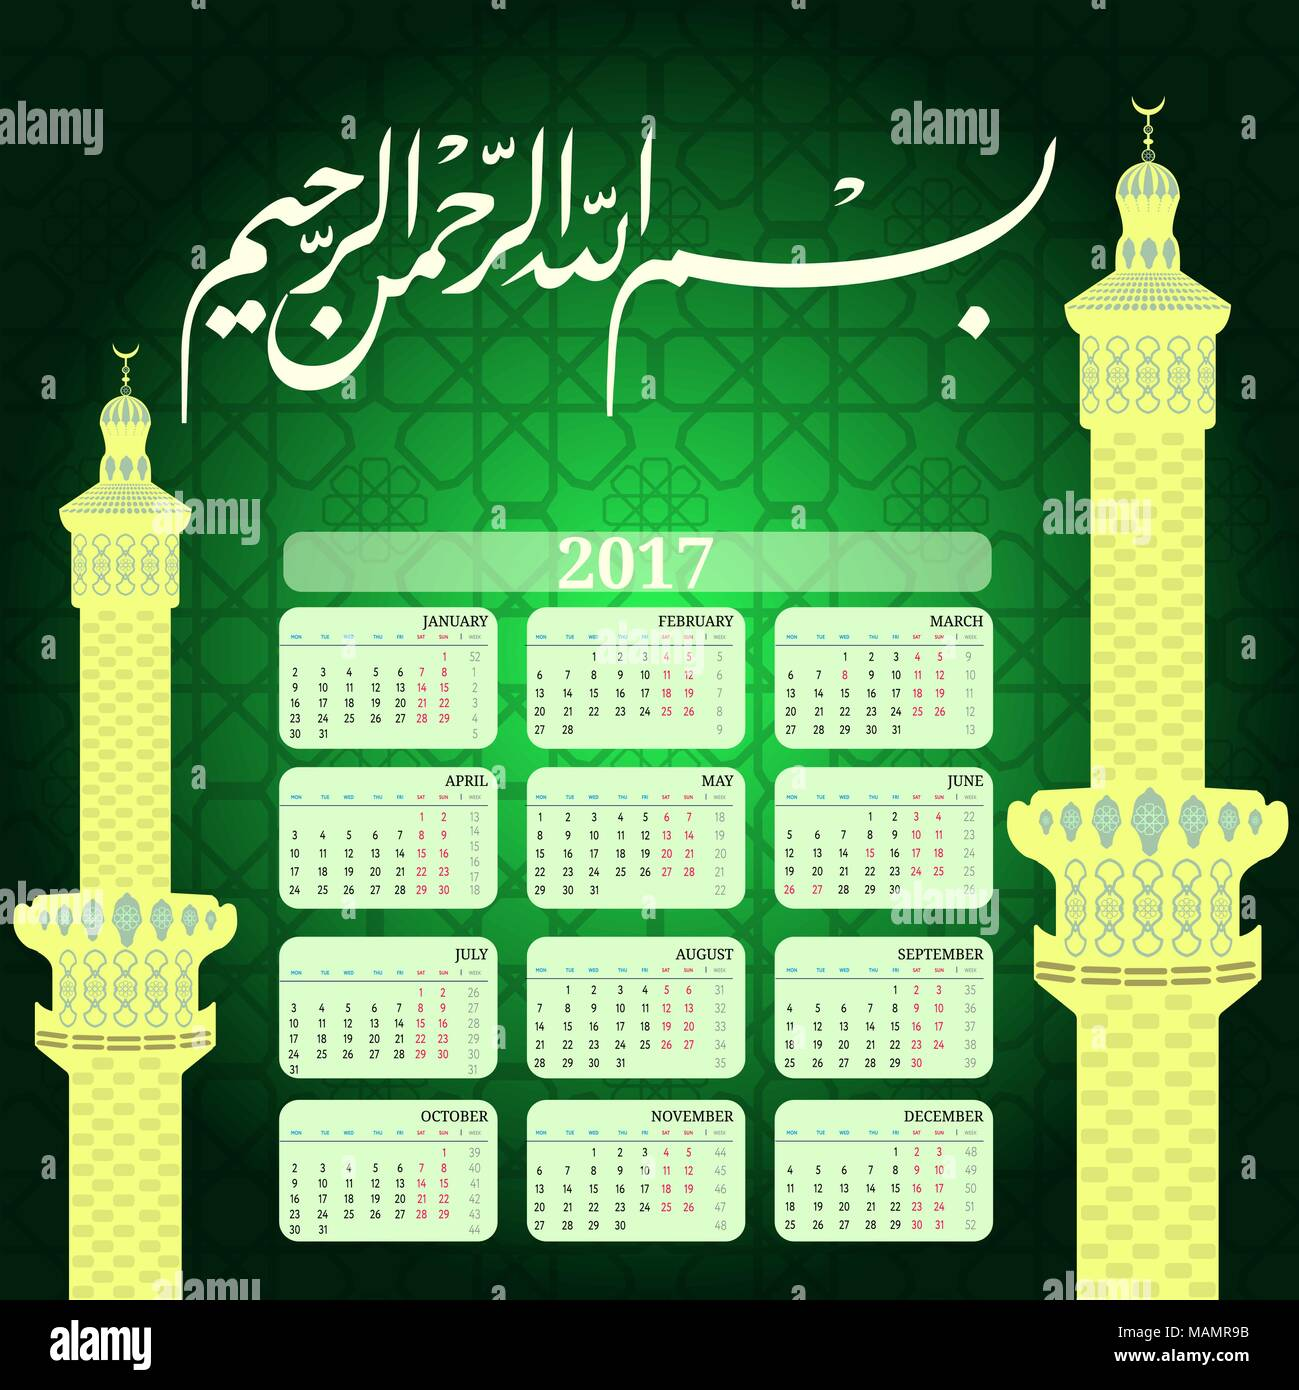 Calendar 2017 With Islamic Background And Mosque Translation Of